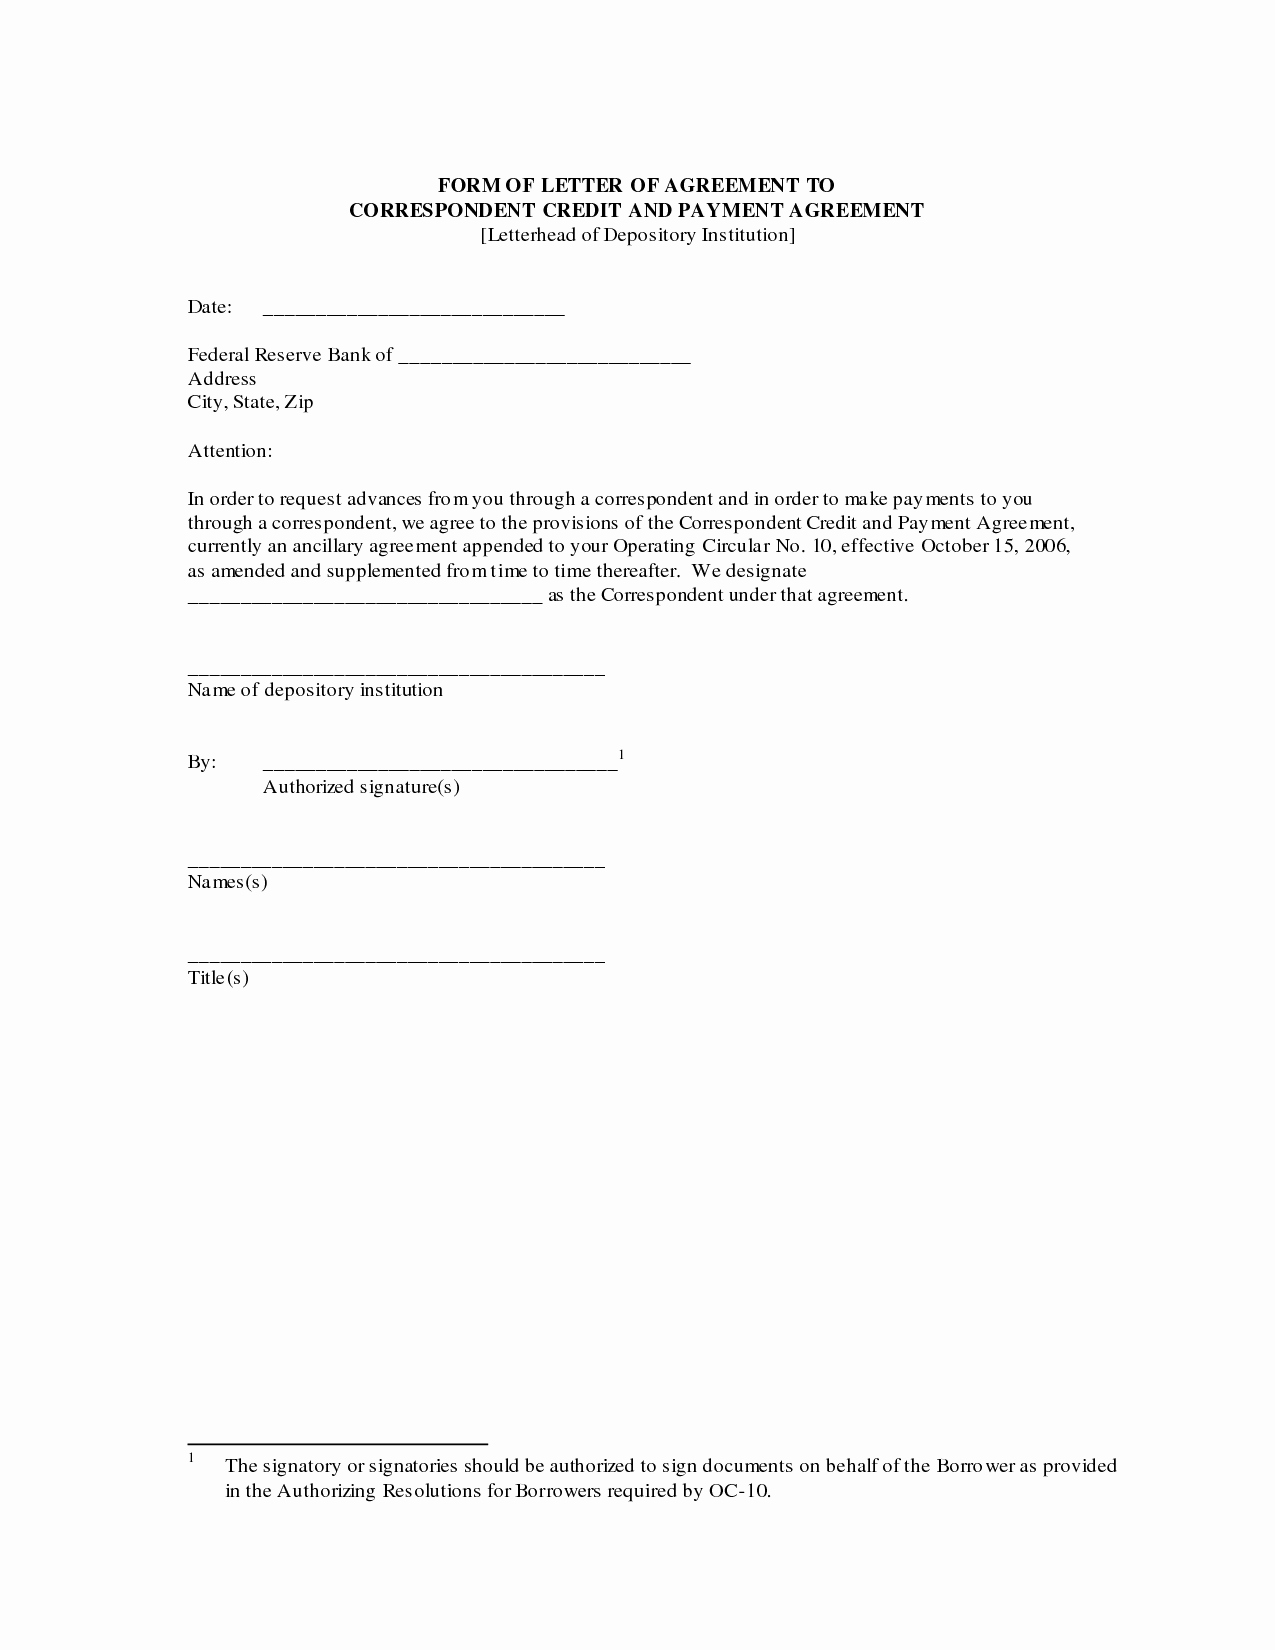 Letters Of Agreement Templates New Agreement Letter Free Printable Documents